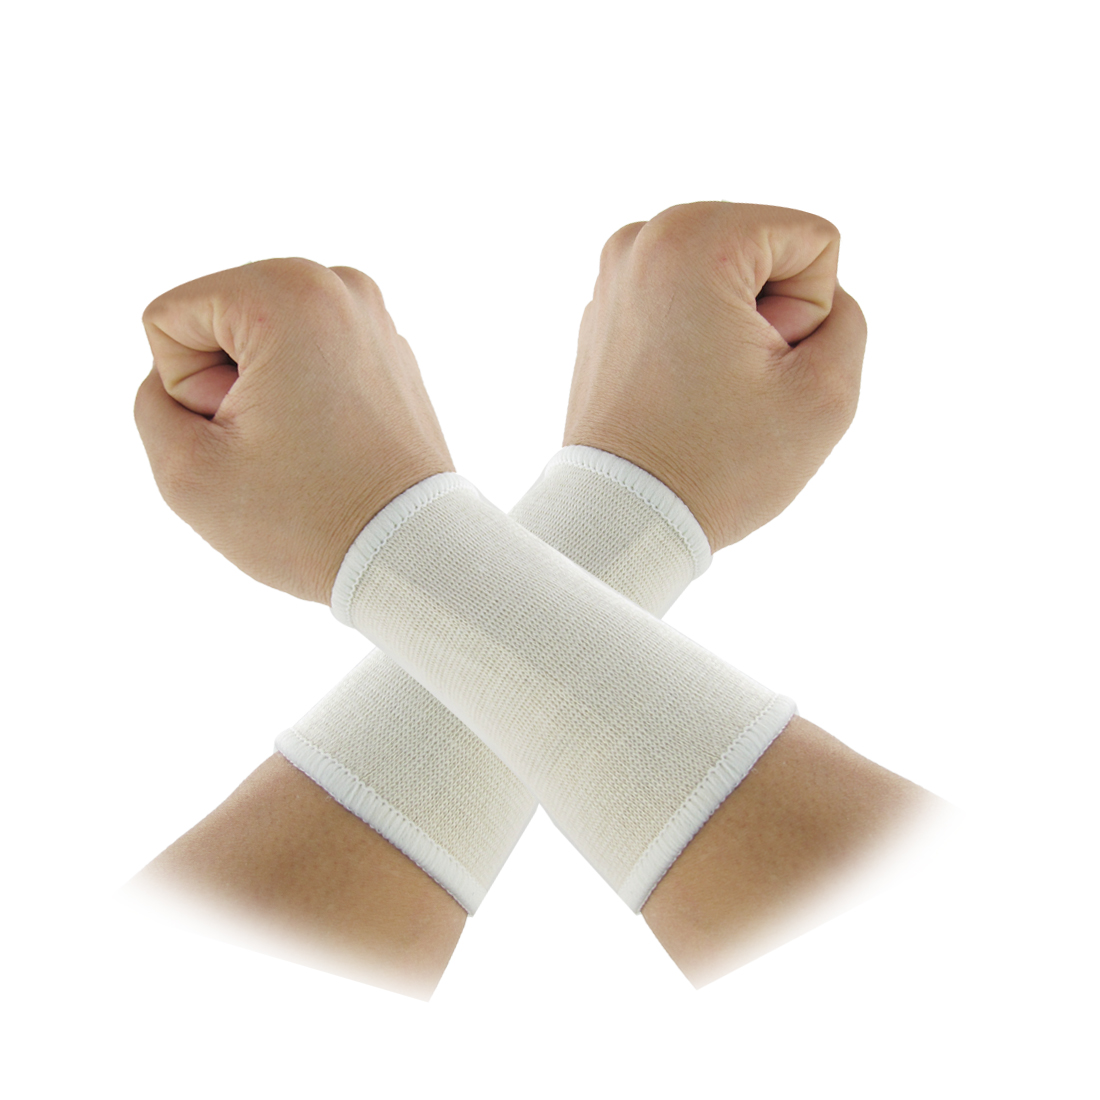 Basketball Volleyball Ivory Stretch Protective Wrist Support 2 Pcs